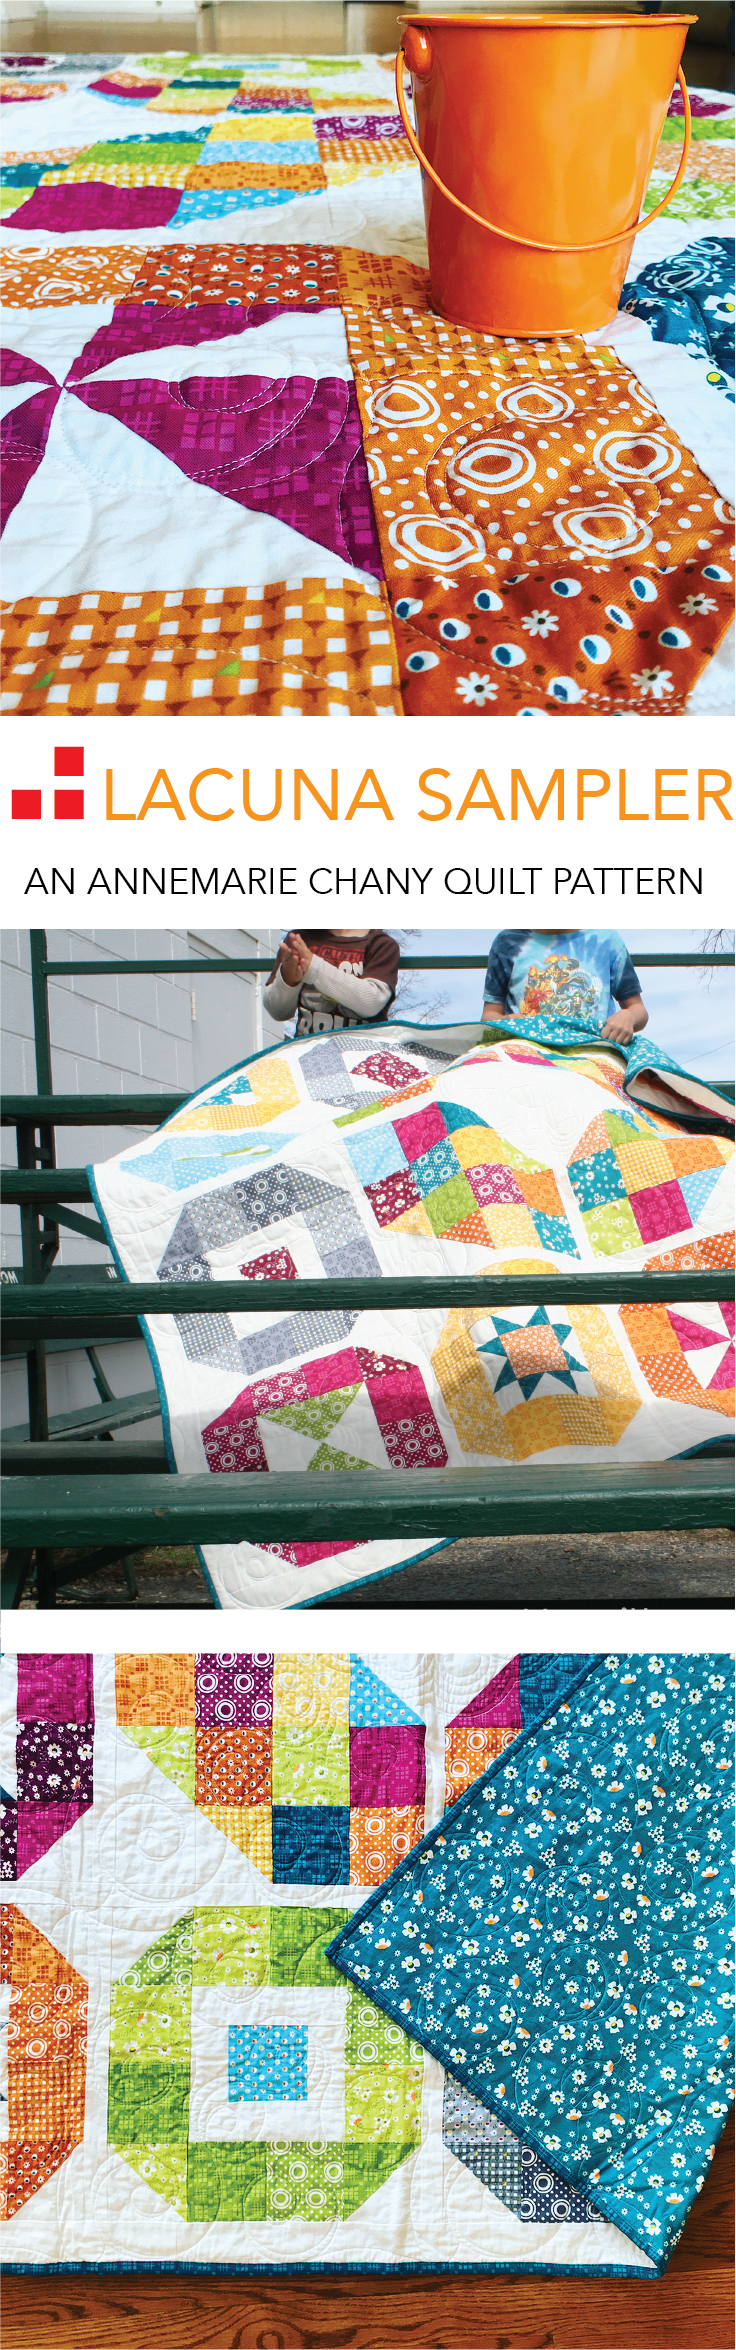 Pin On Annemarie Chany Quilt Patterns